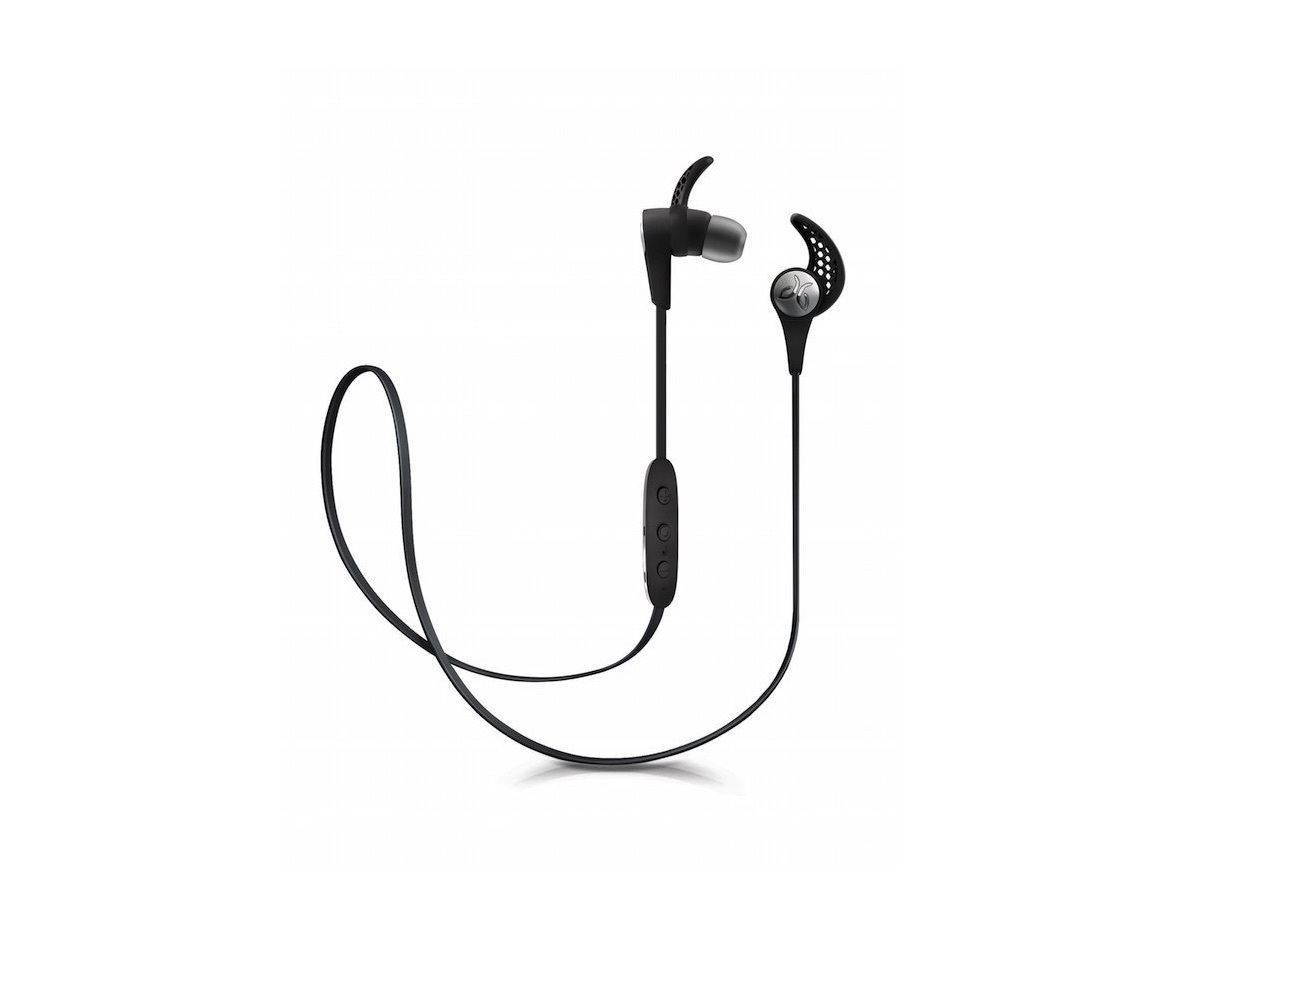 Jaybird X3 Wireless Bluetooth Headphones